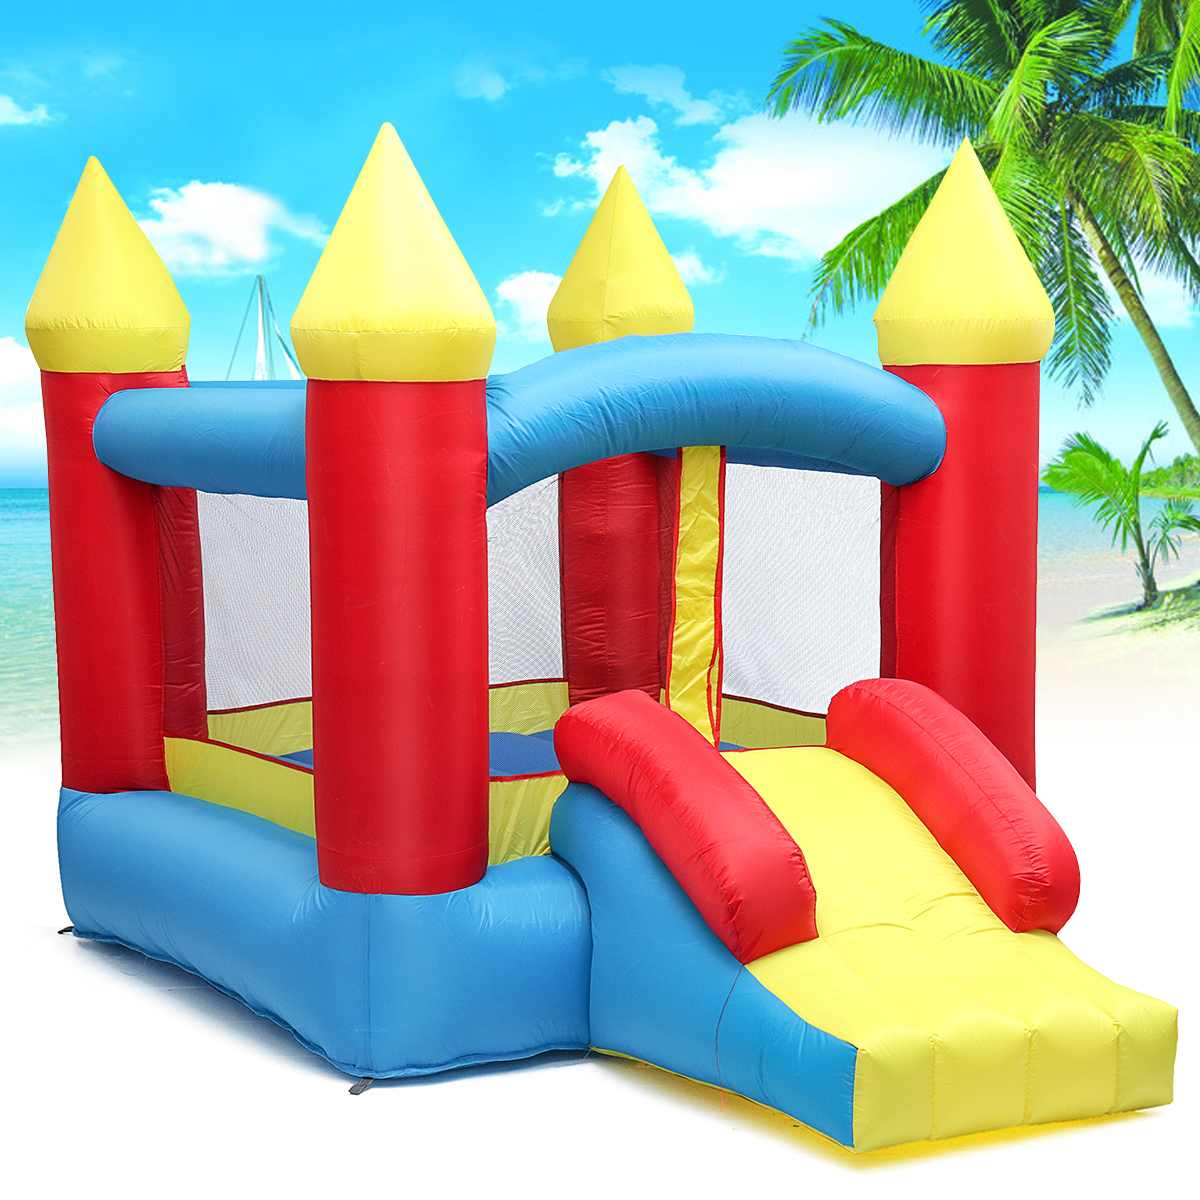 1Set Bouncy Castle Outdoor Indoor Universal Trampoline Inflatable Castle Playing Games for Kids Gift